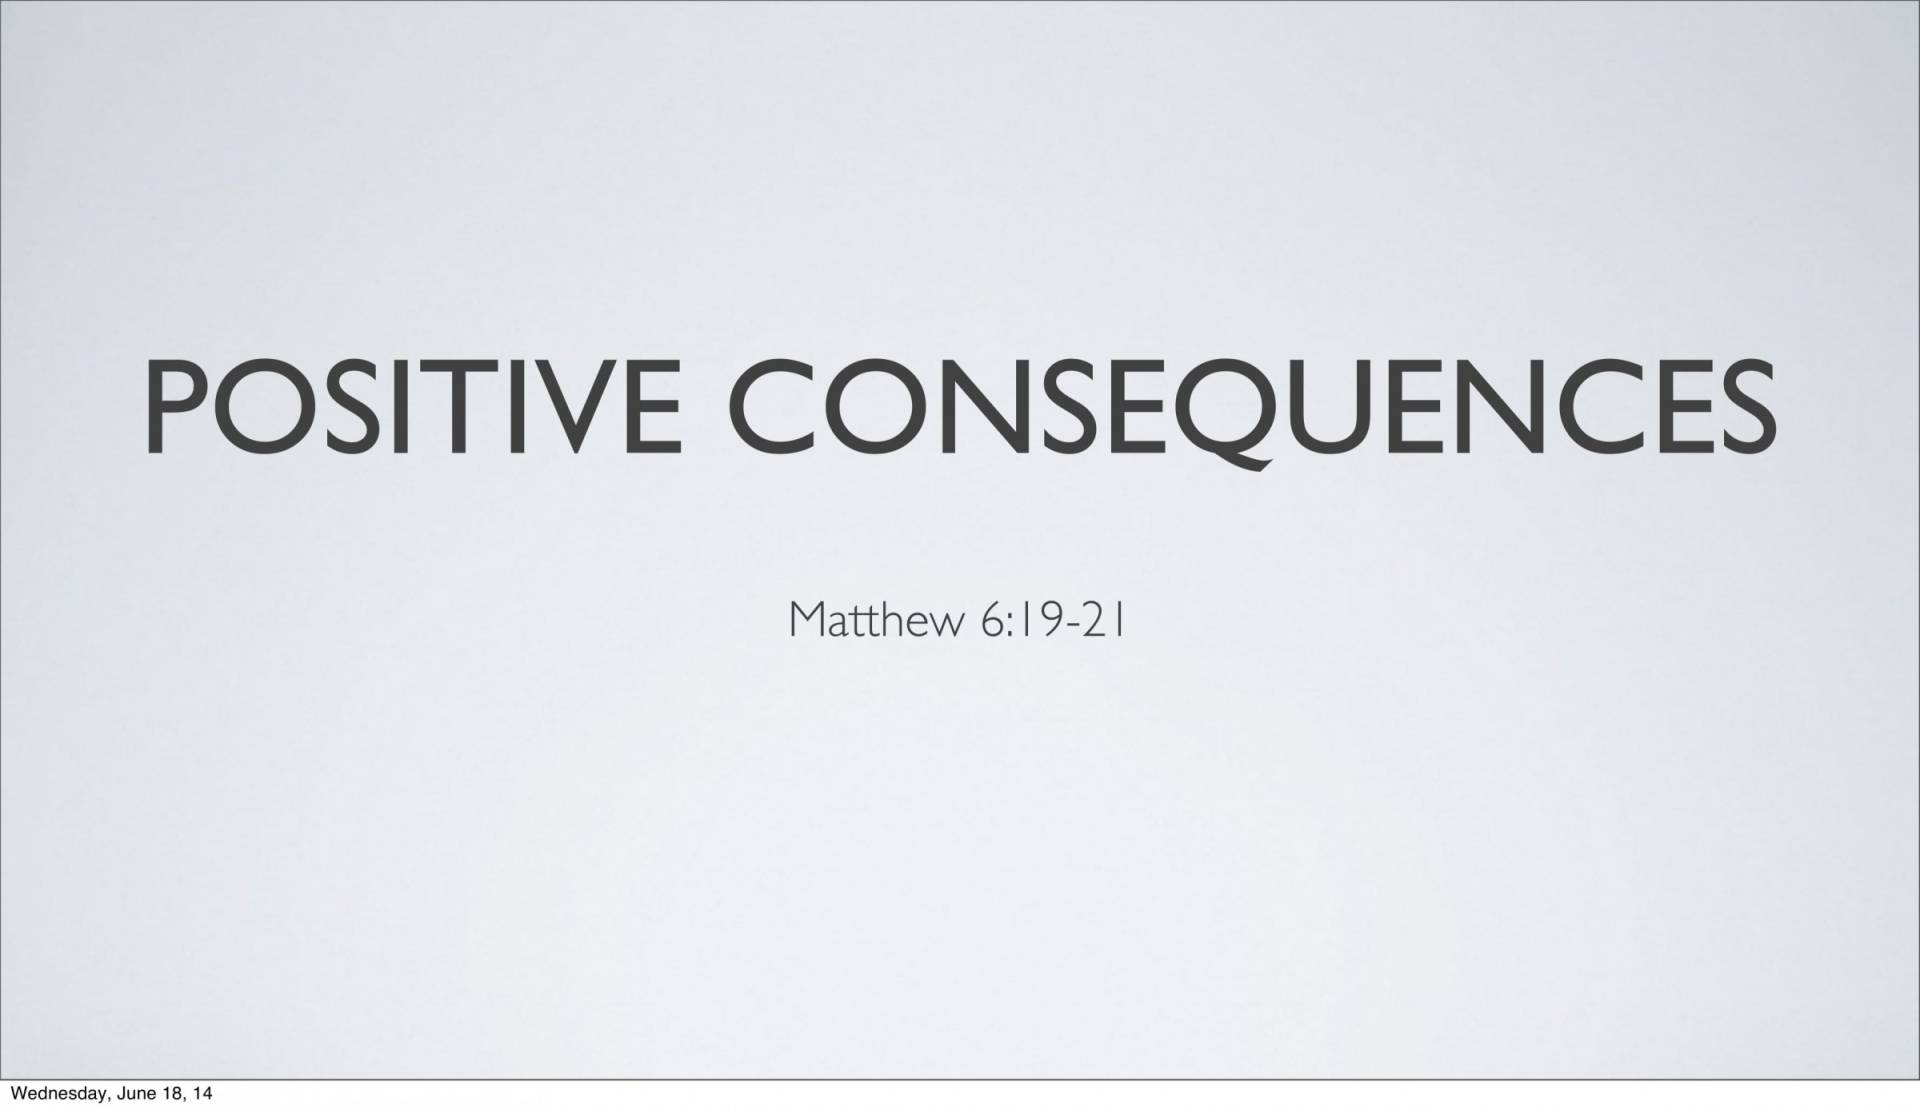 BC&D-14 - Lesson 5-1 - The Inescapable Consequences Of Sin-18